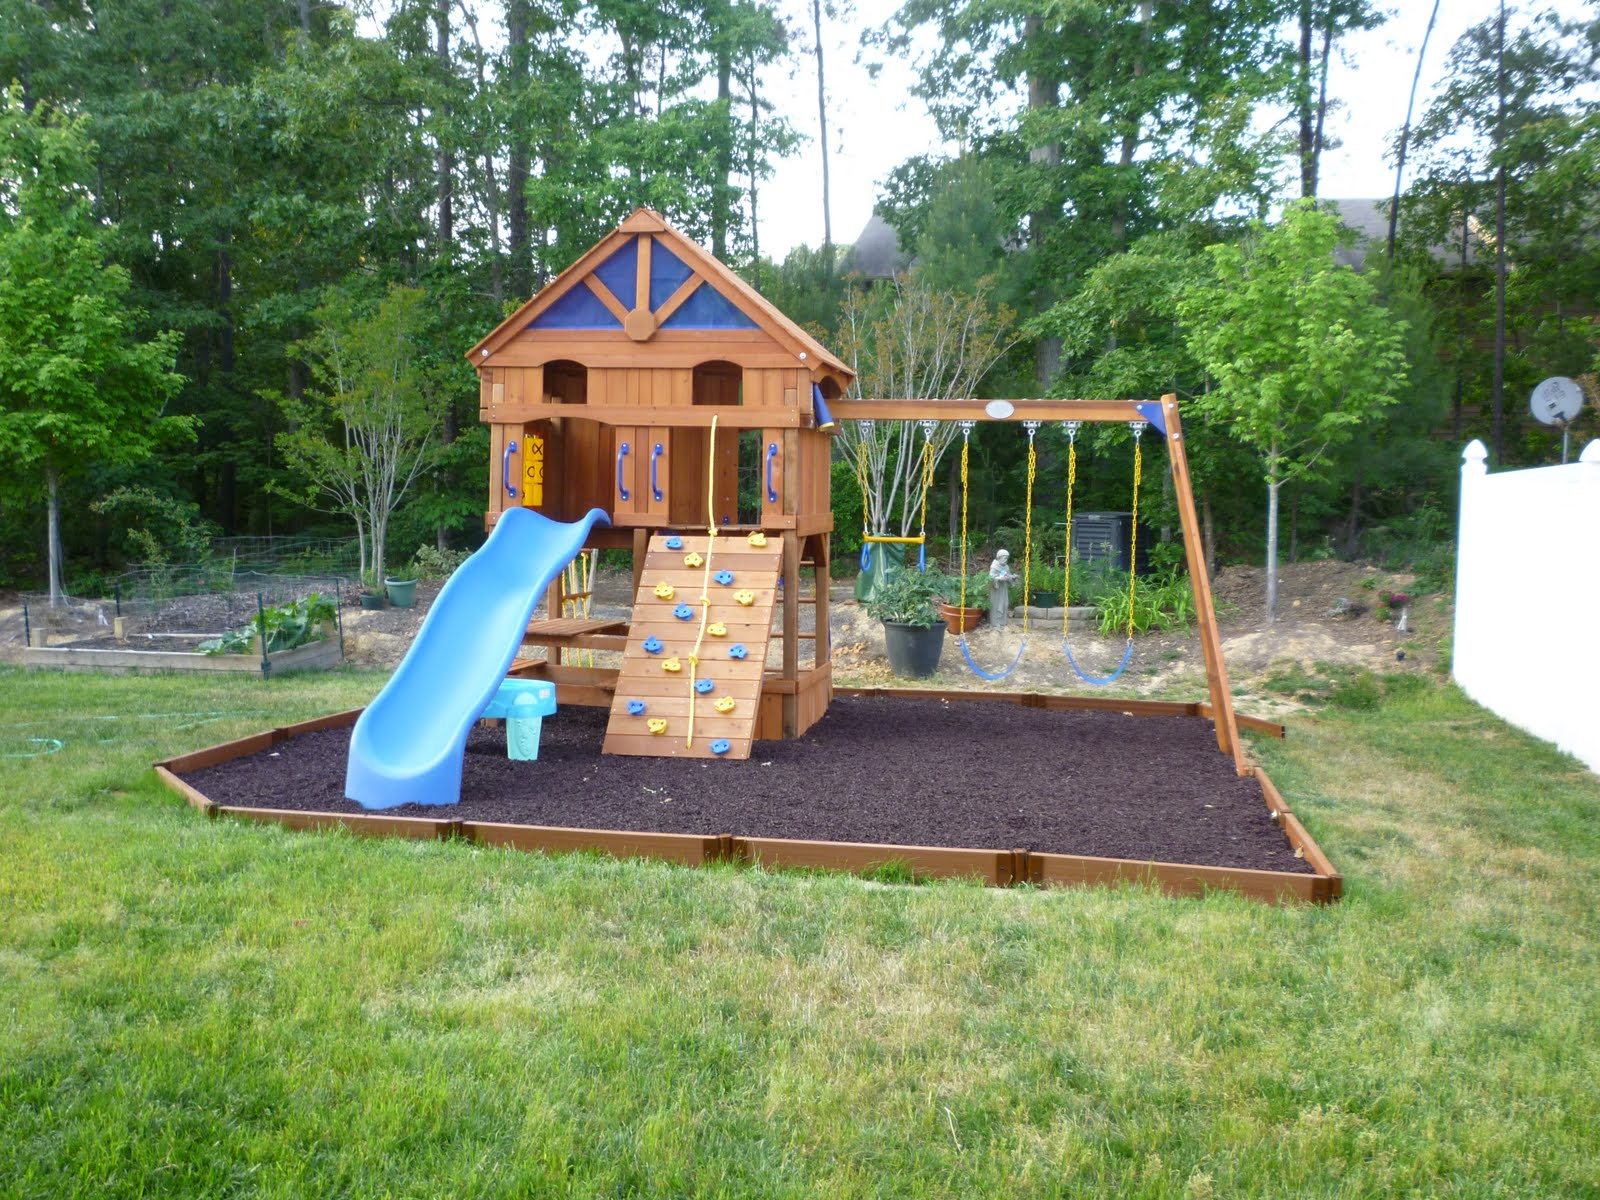 Furniture Charming Backyard Playsets For Kids Playground Ideas regarding 11 Clever Ways How to Craft Toddler Backyard Ideas